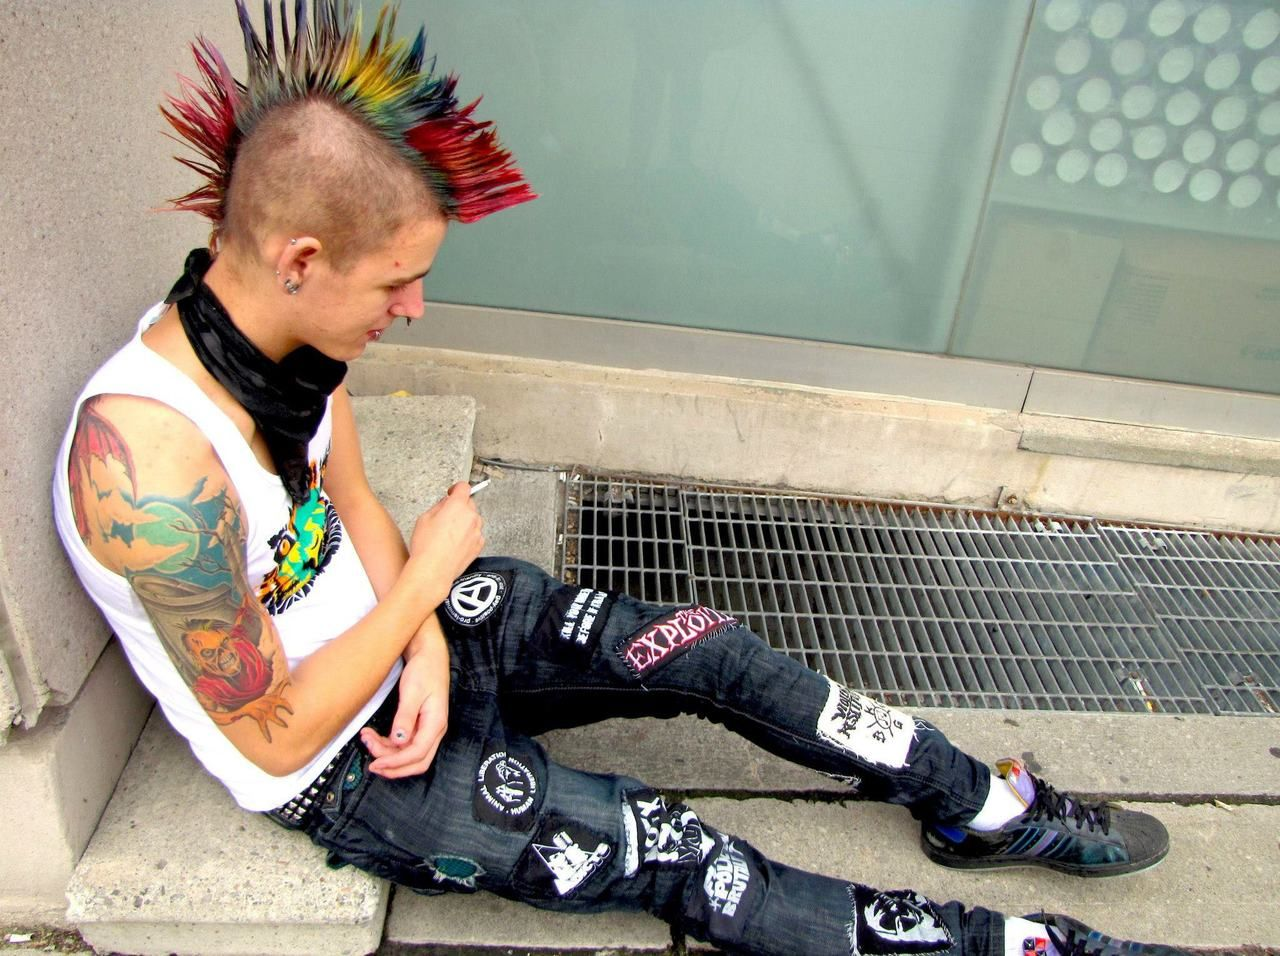 Awesome hair and pants ᖘᘮᘉḰ pinterest awesome hair